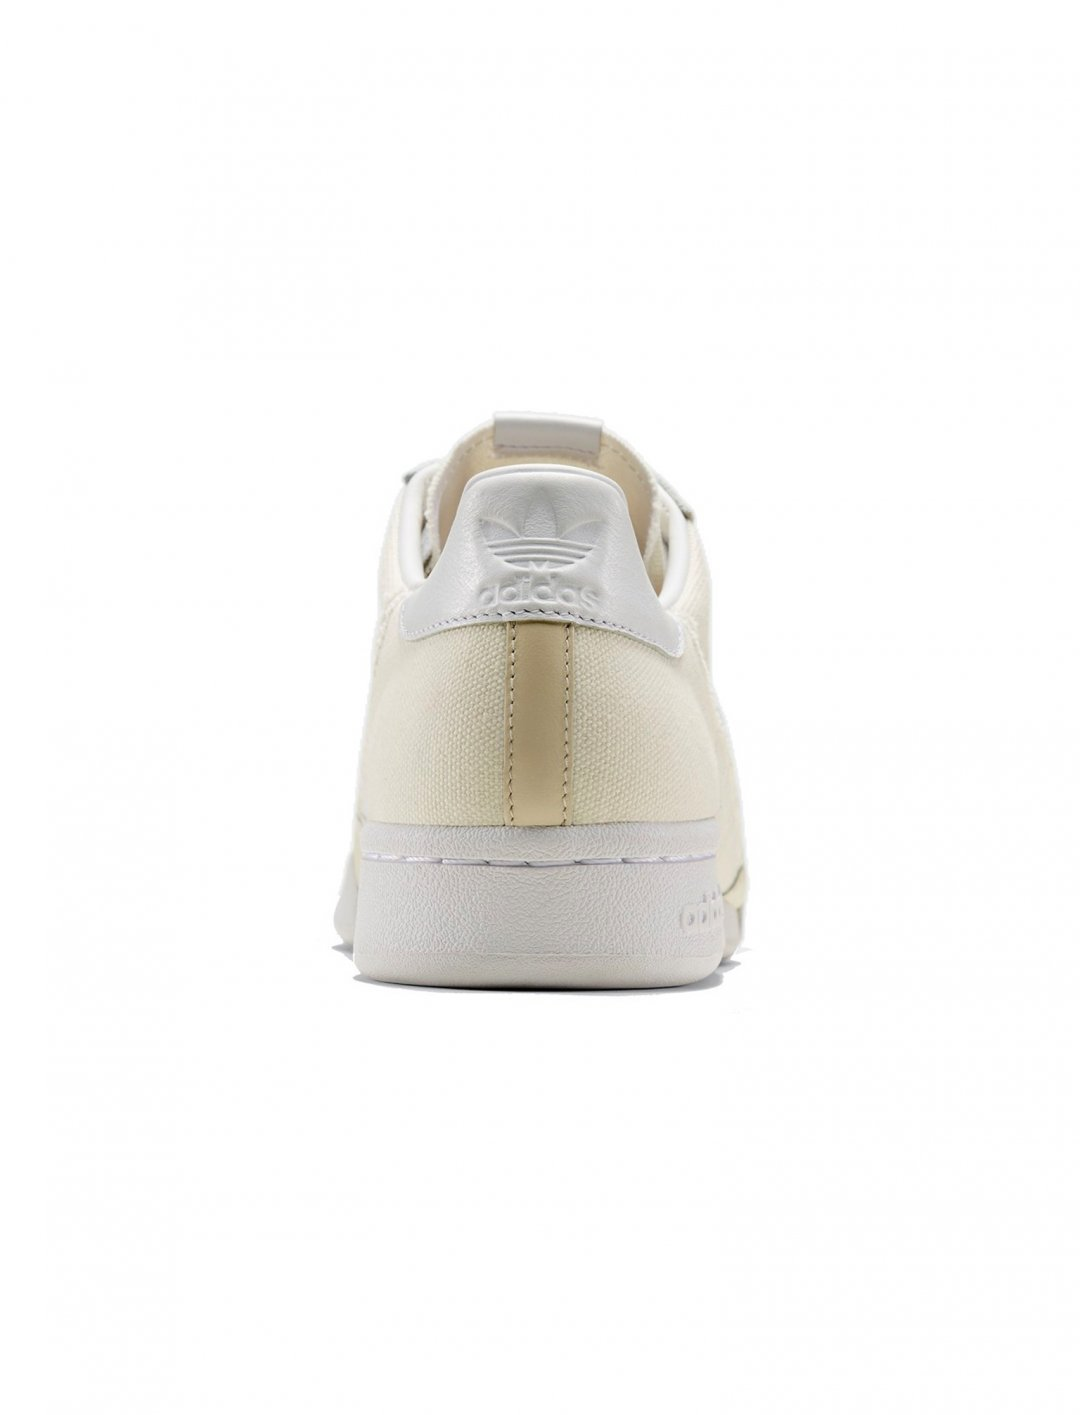 "Continental 80 Shoes {""id"":12,""product_section_id"":1,""name"":""Shoes"",""order"":12} Adidas"